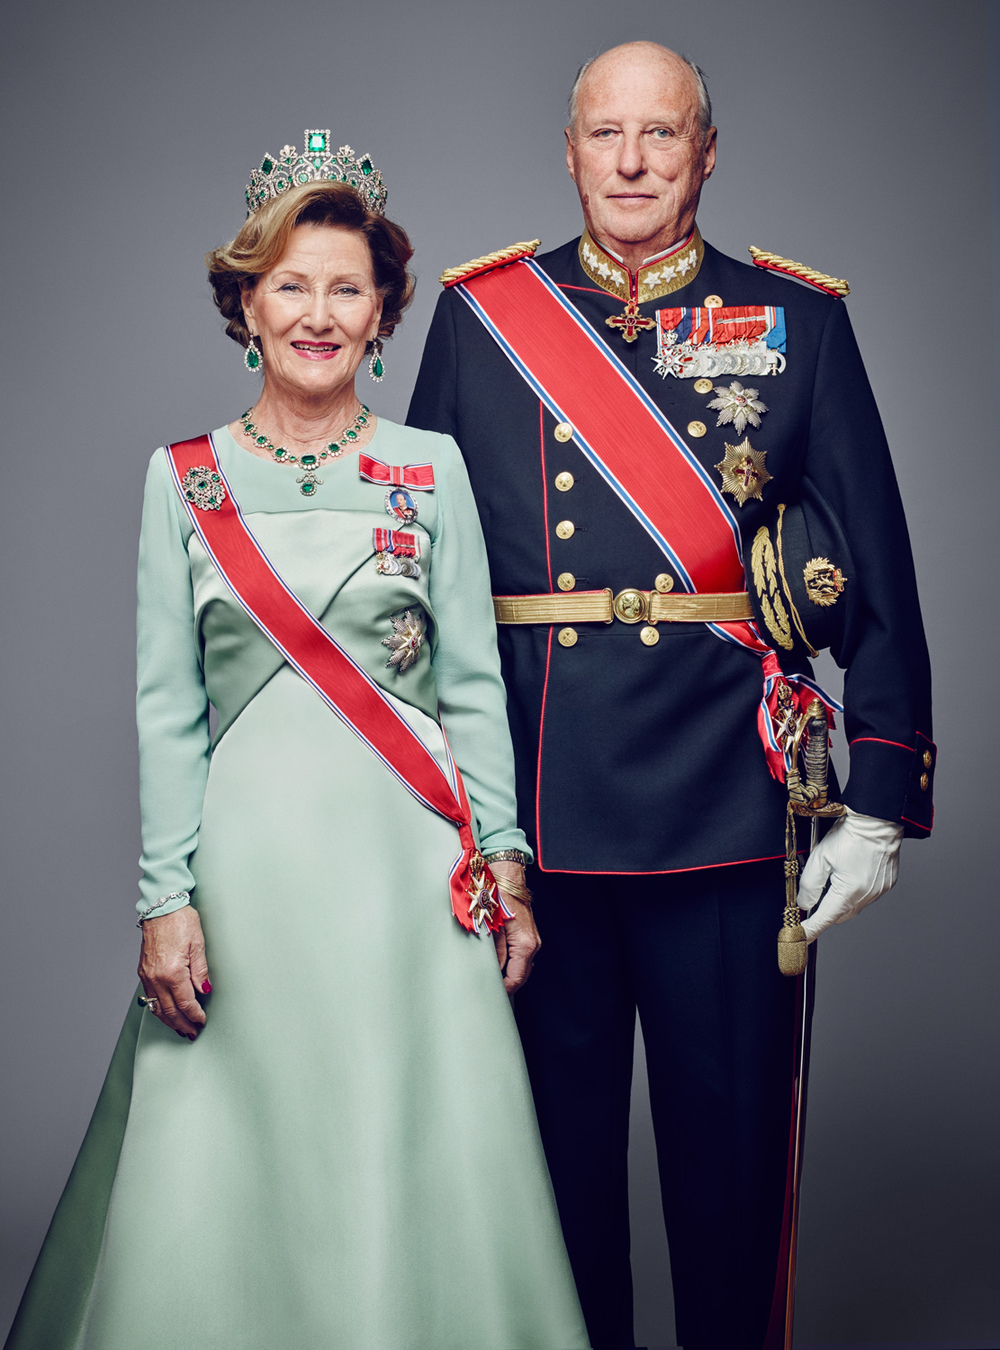 Their Majesties King Harald and Queen Sonja